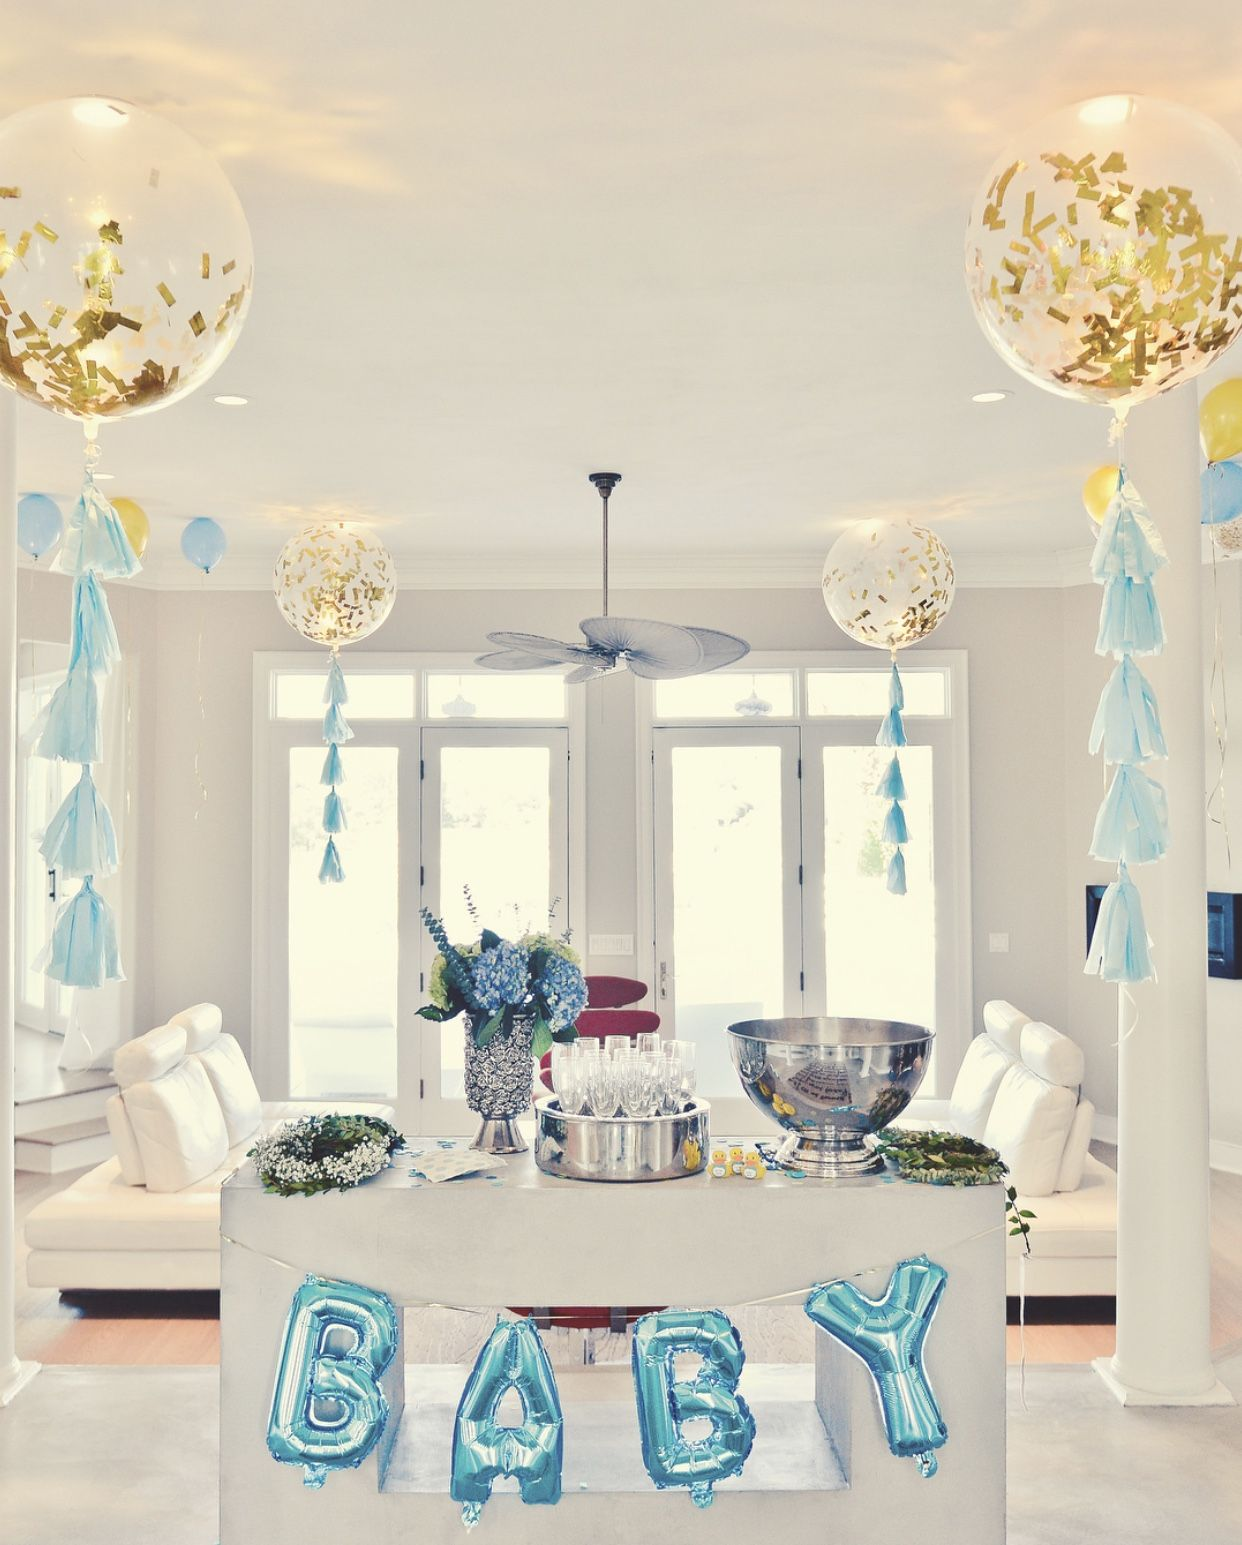 Pin by Catherine Keistler on Baby shower ideas Home